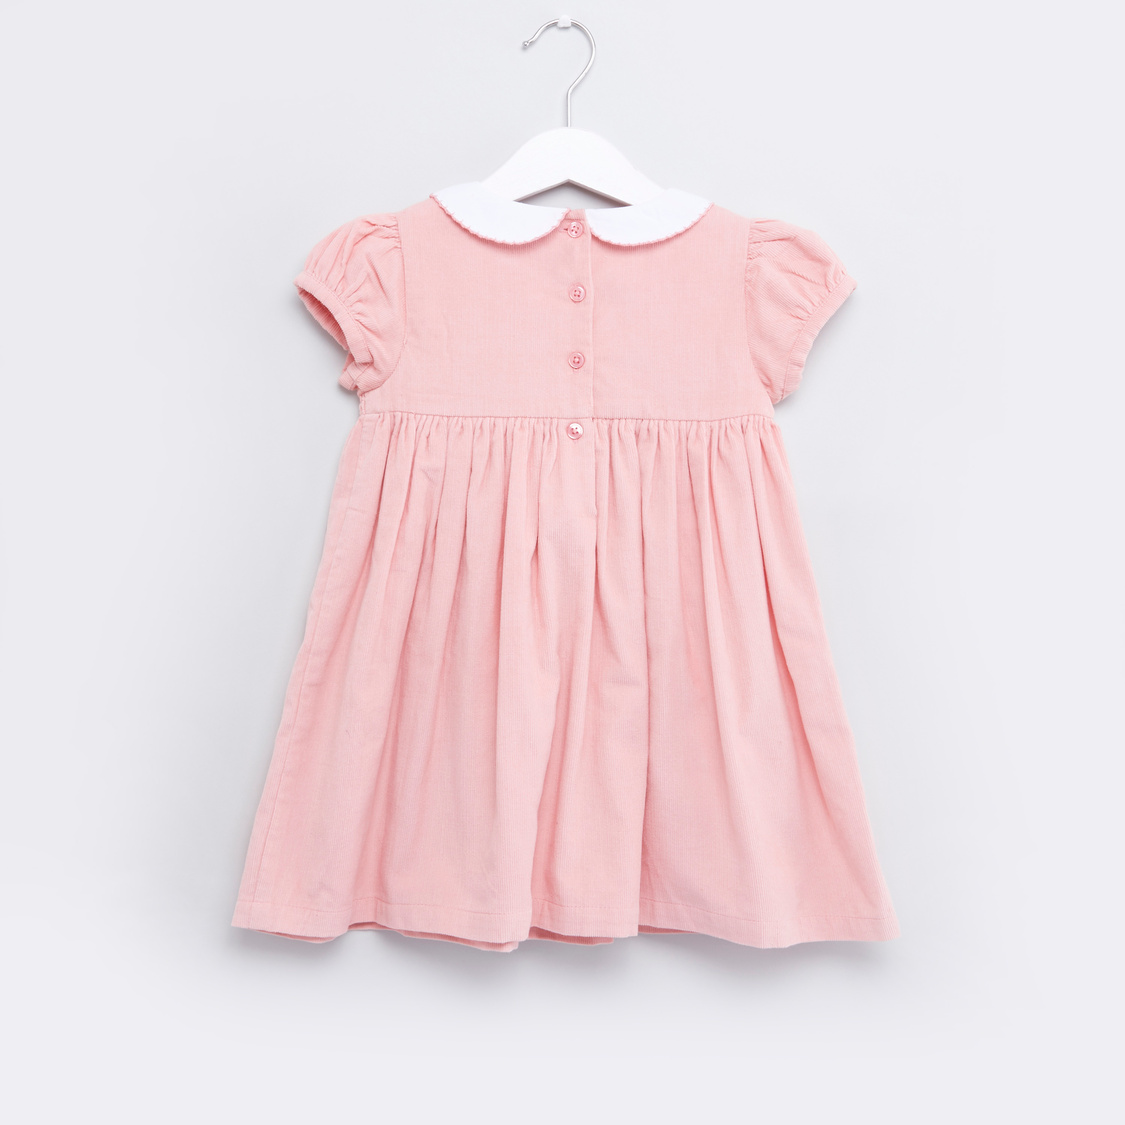 Smocked Dress with Peter Pan Collar and Cap Sleeves